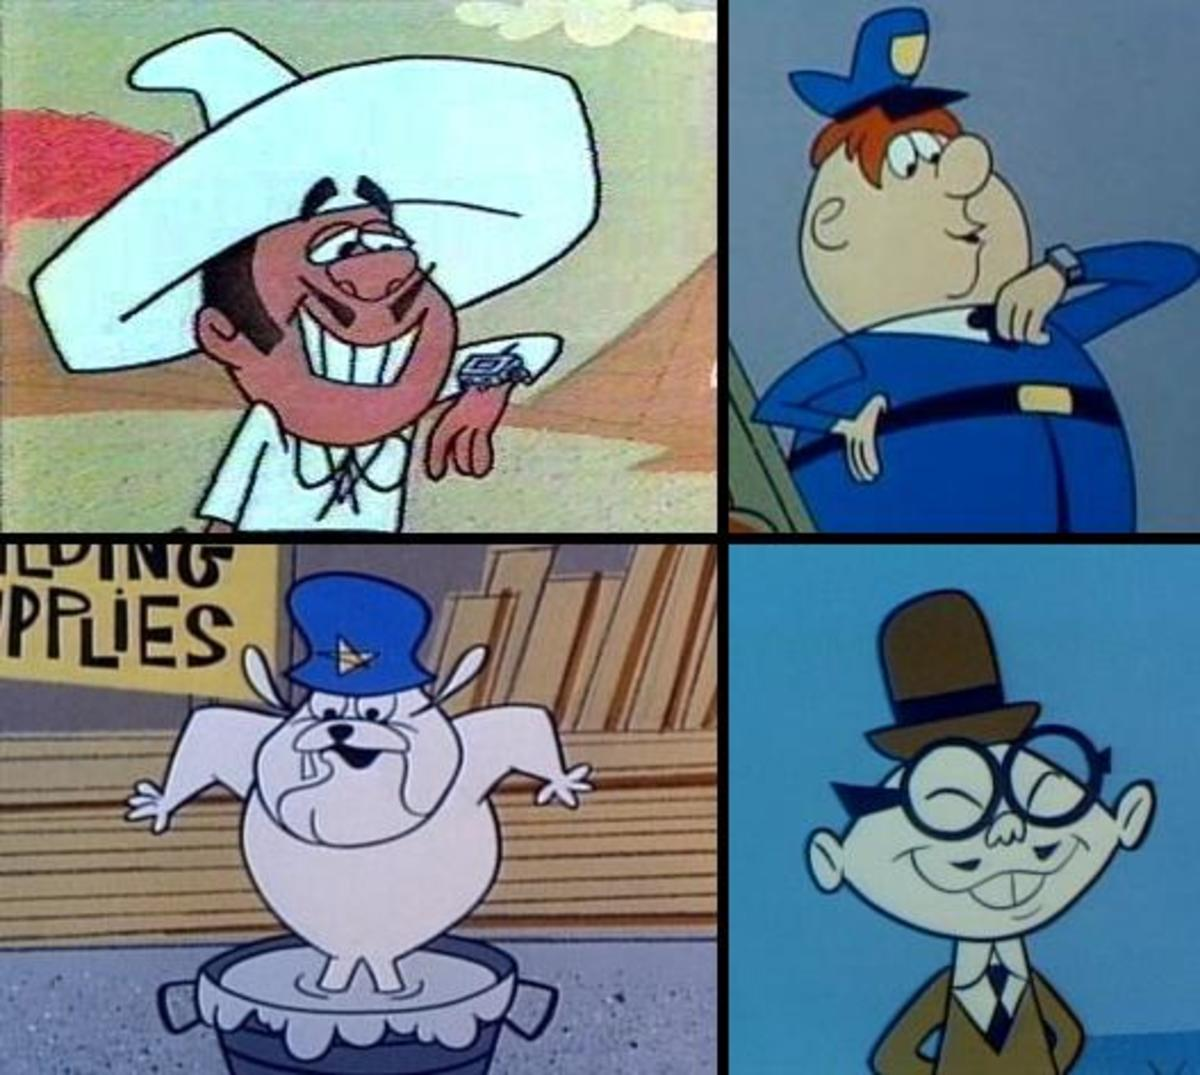 Dick Tracy's four assistants who do the majority of the work for him in this series (Clockwise: Go-Go Gomez, Heap O'Calorie, Joe Jitsu,  Hemlock Holmes)